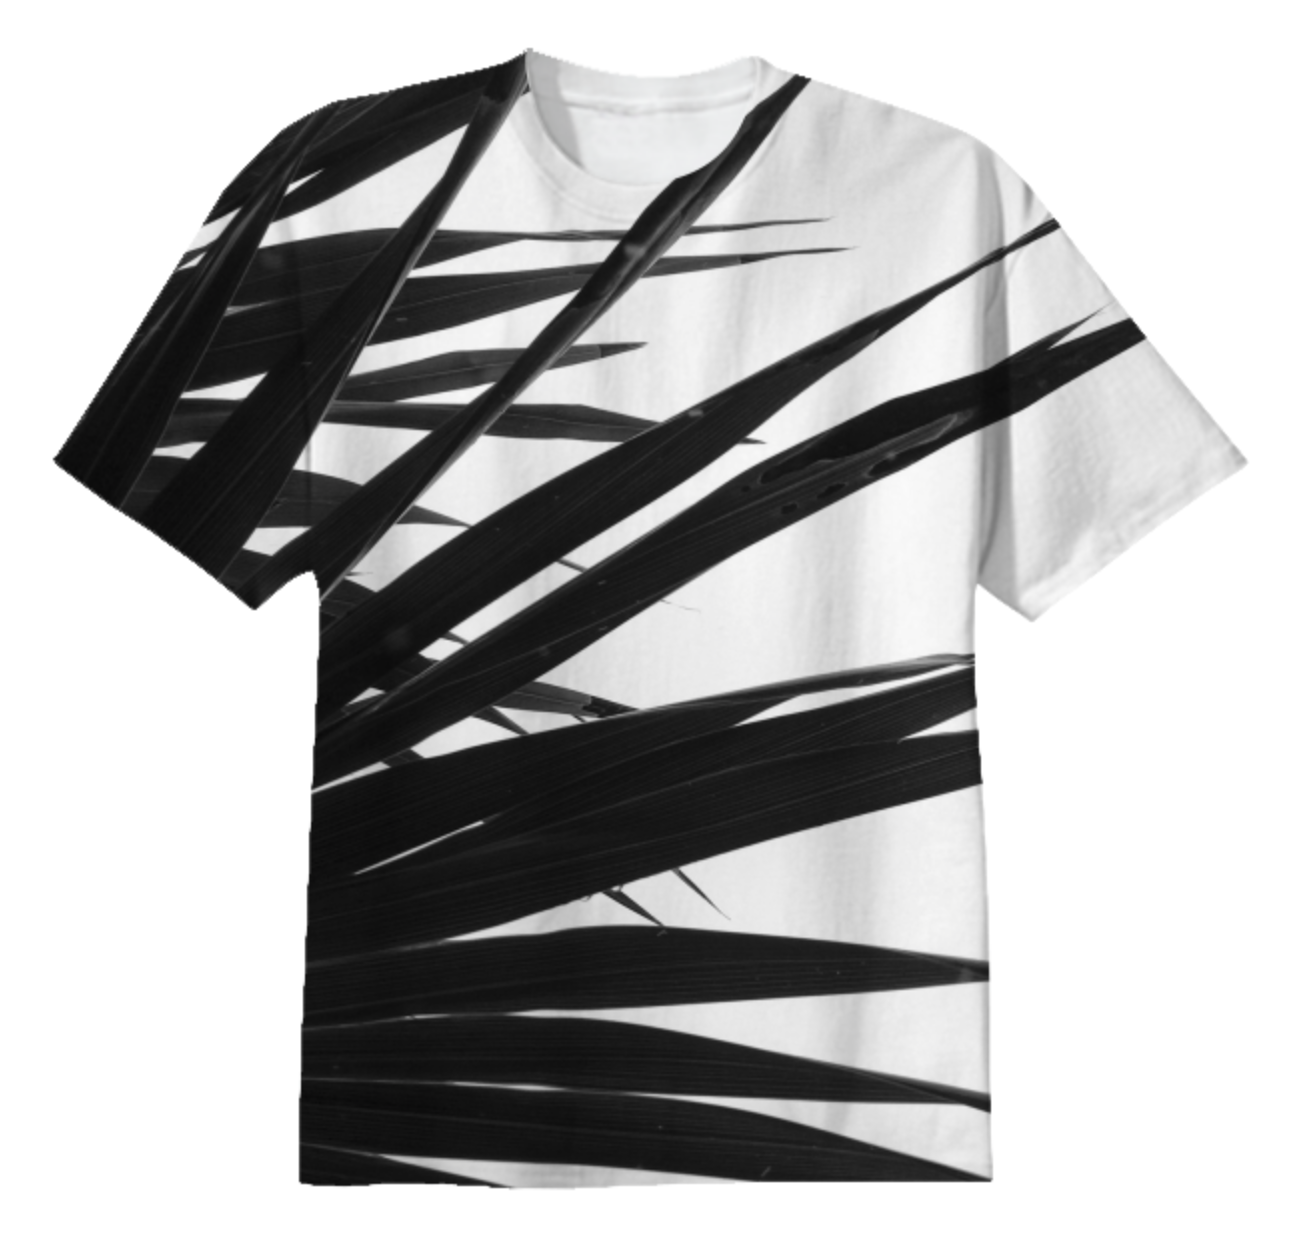 BW PALMY TEE    Totally All Cotton      Thirty Eight Dollars